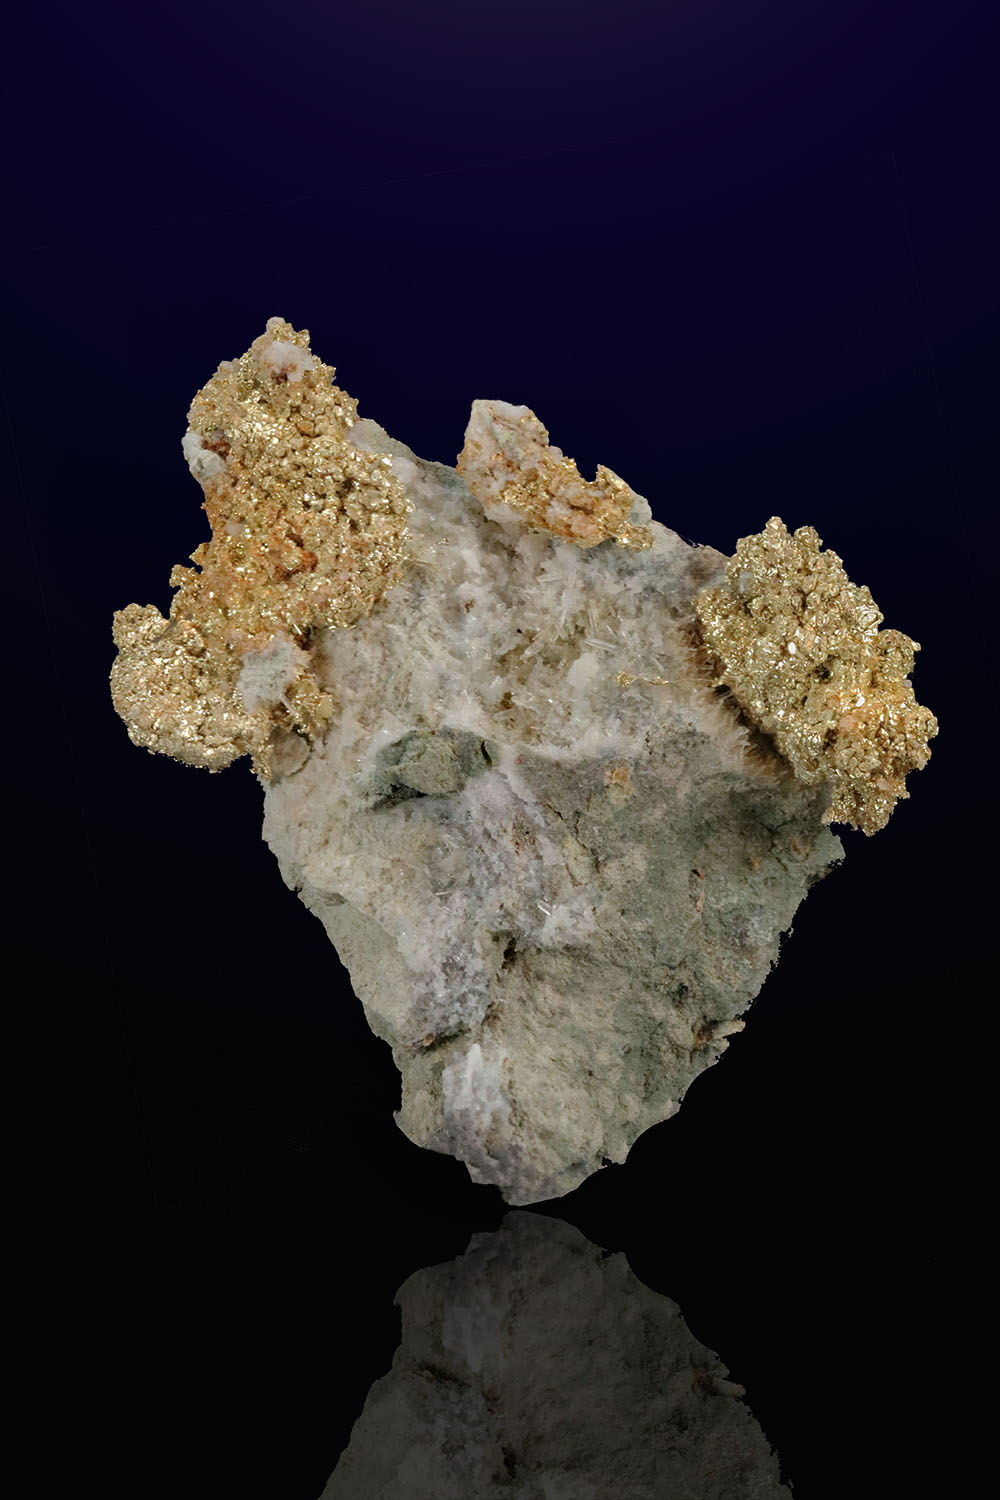 Olinghouse Mine Nevada Gold Crystals In Quartz Specimen 749 00 Natural Gold Nuggets For Sale Buy Gold Nuggets And Specimens The Finest Jewelry Investment Grade Gold Nuggets From Around The World